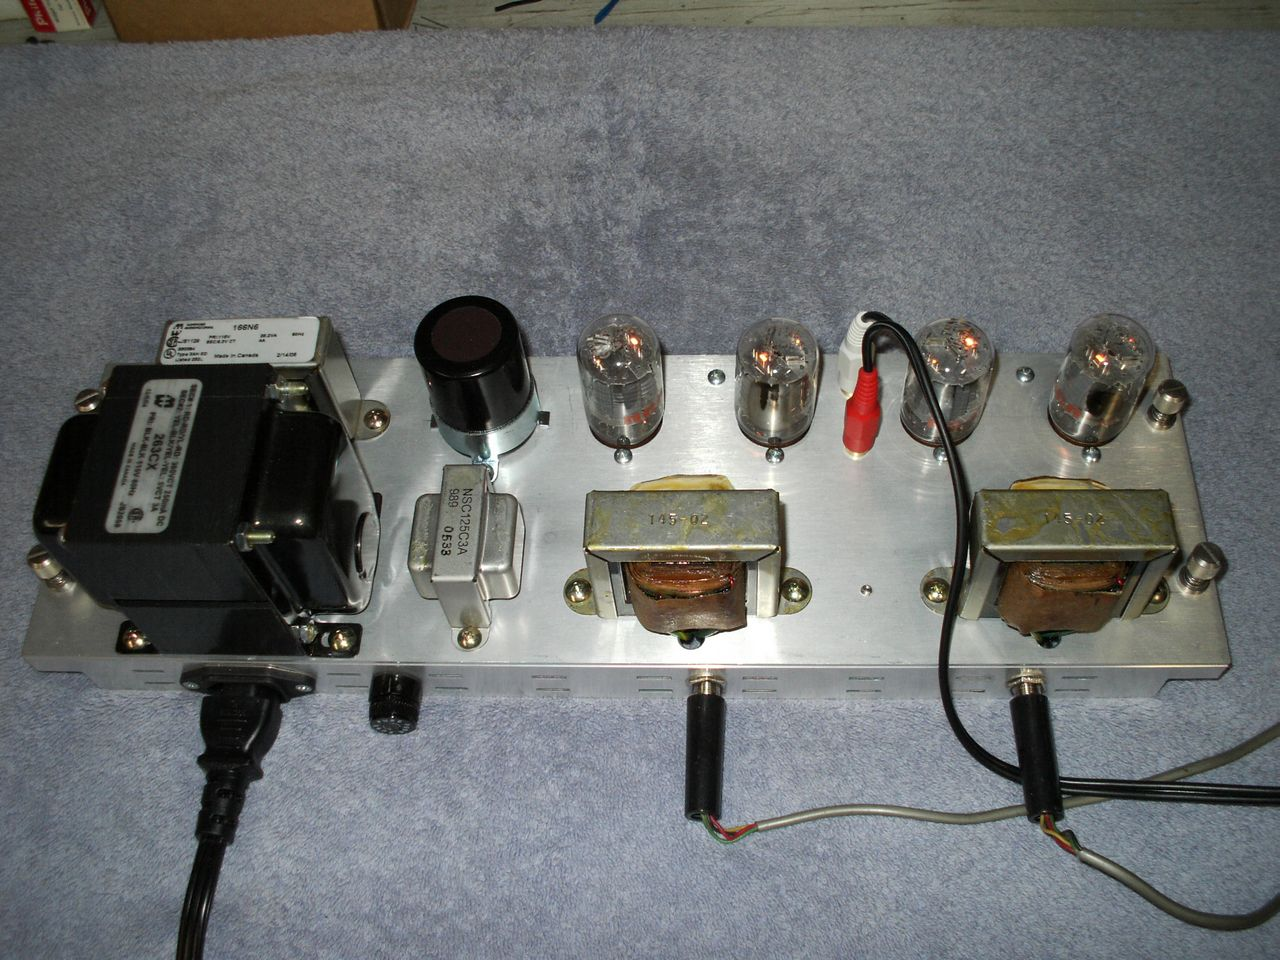 randy miller\u0027s 6t9 compactron vacuum tube diy audio amp Guitar Tube Amps